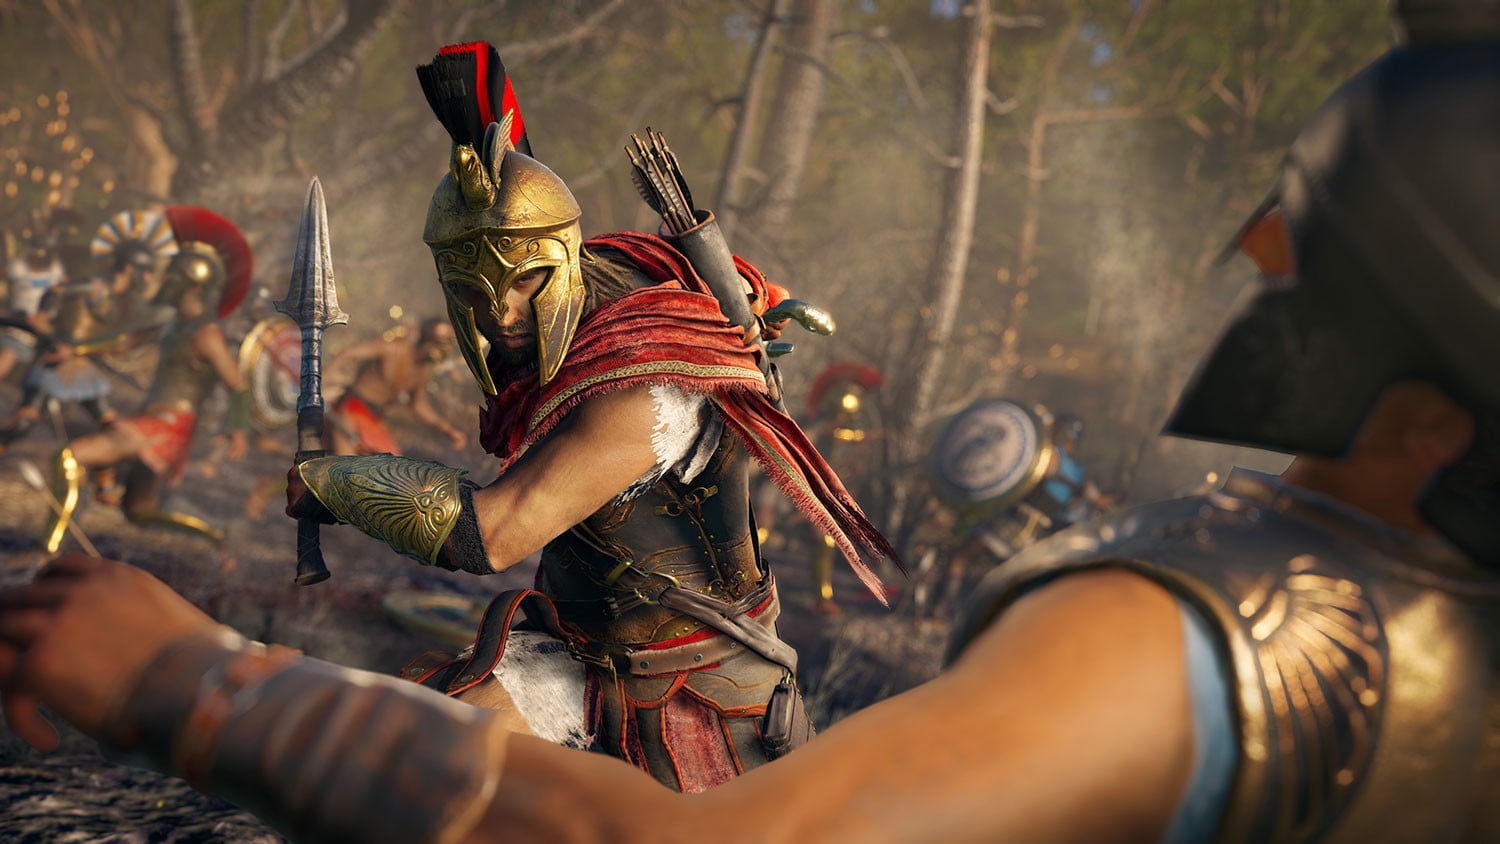 assassin s creed odyssey review as gorgeous as it is monotonous digital trends. Black Bedroom Furniture Sets. Home Design Ideas